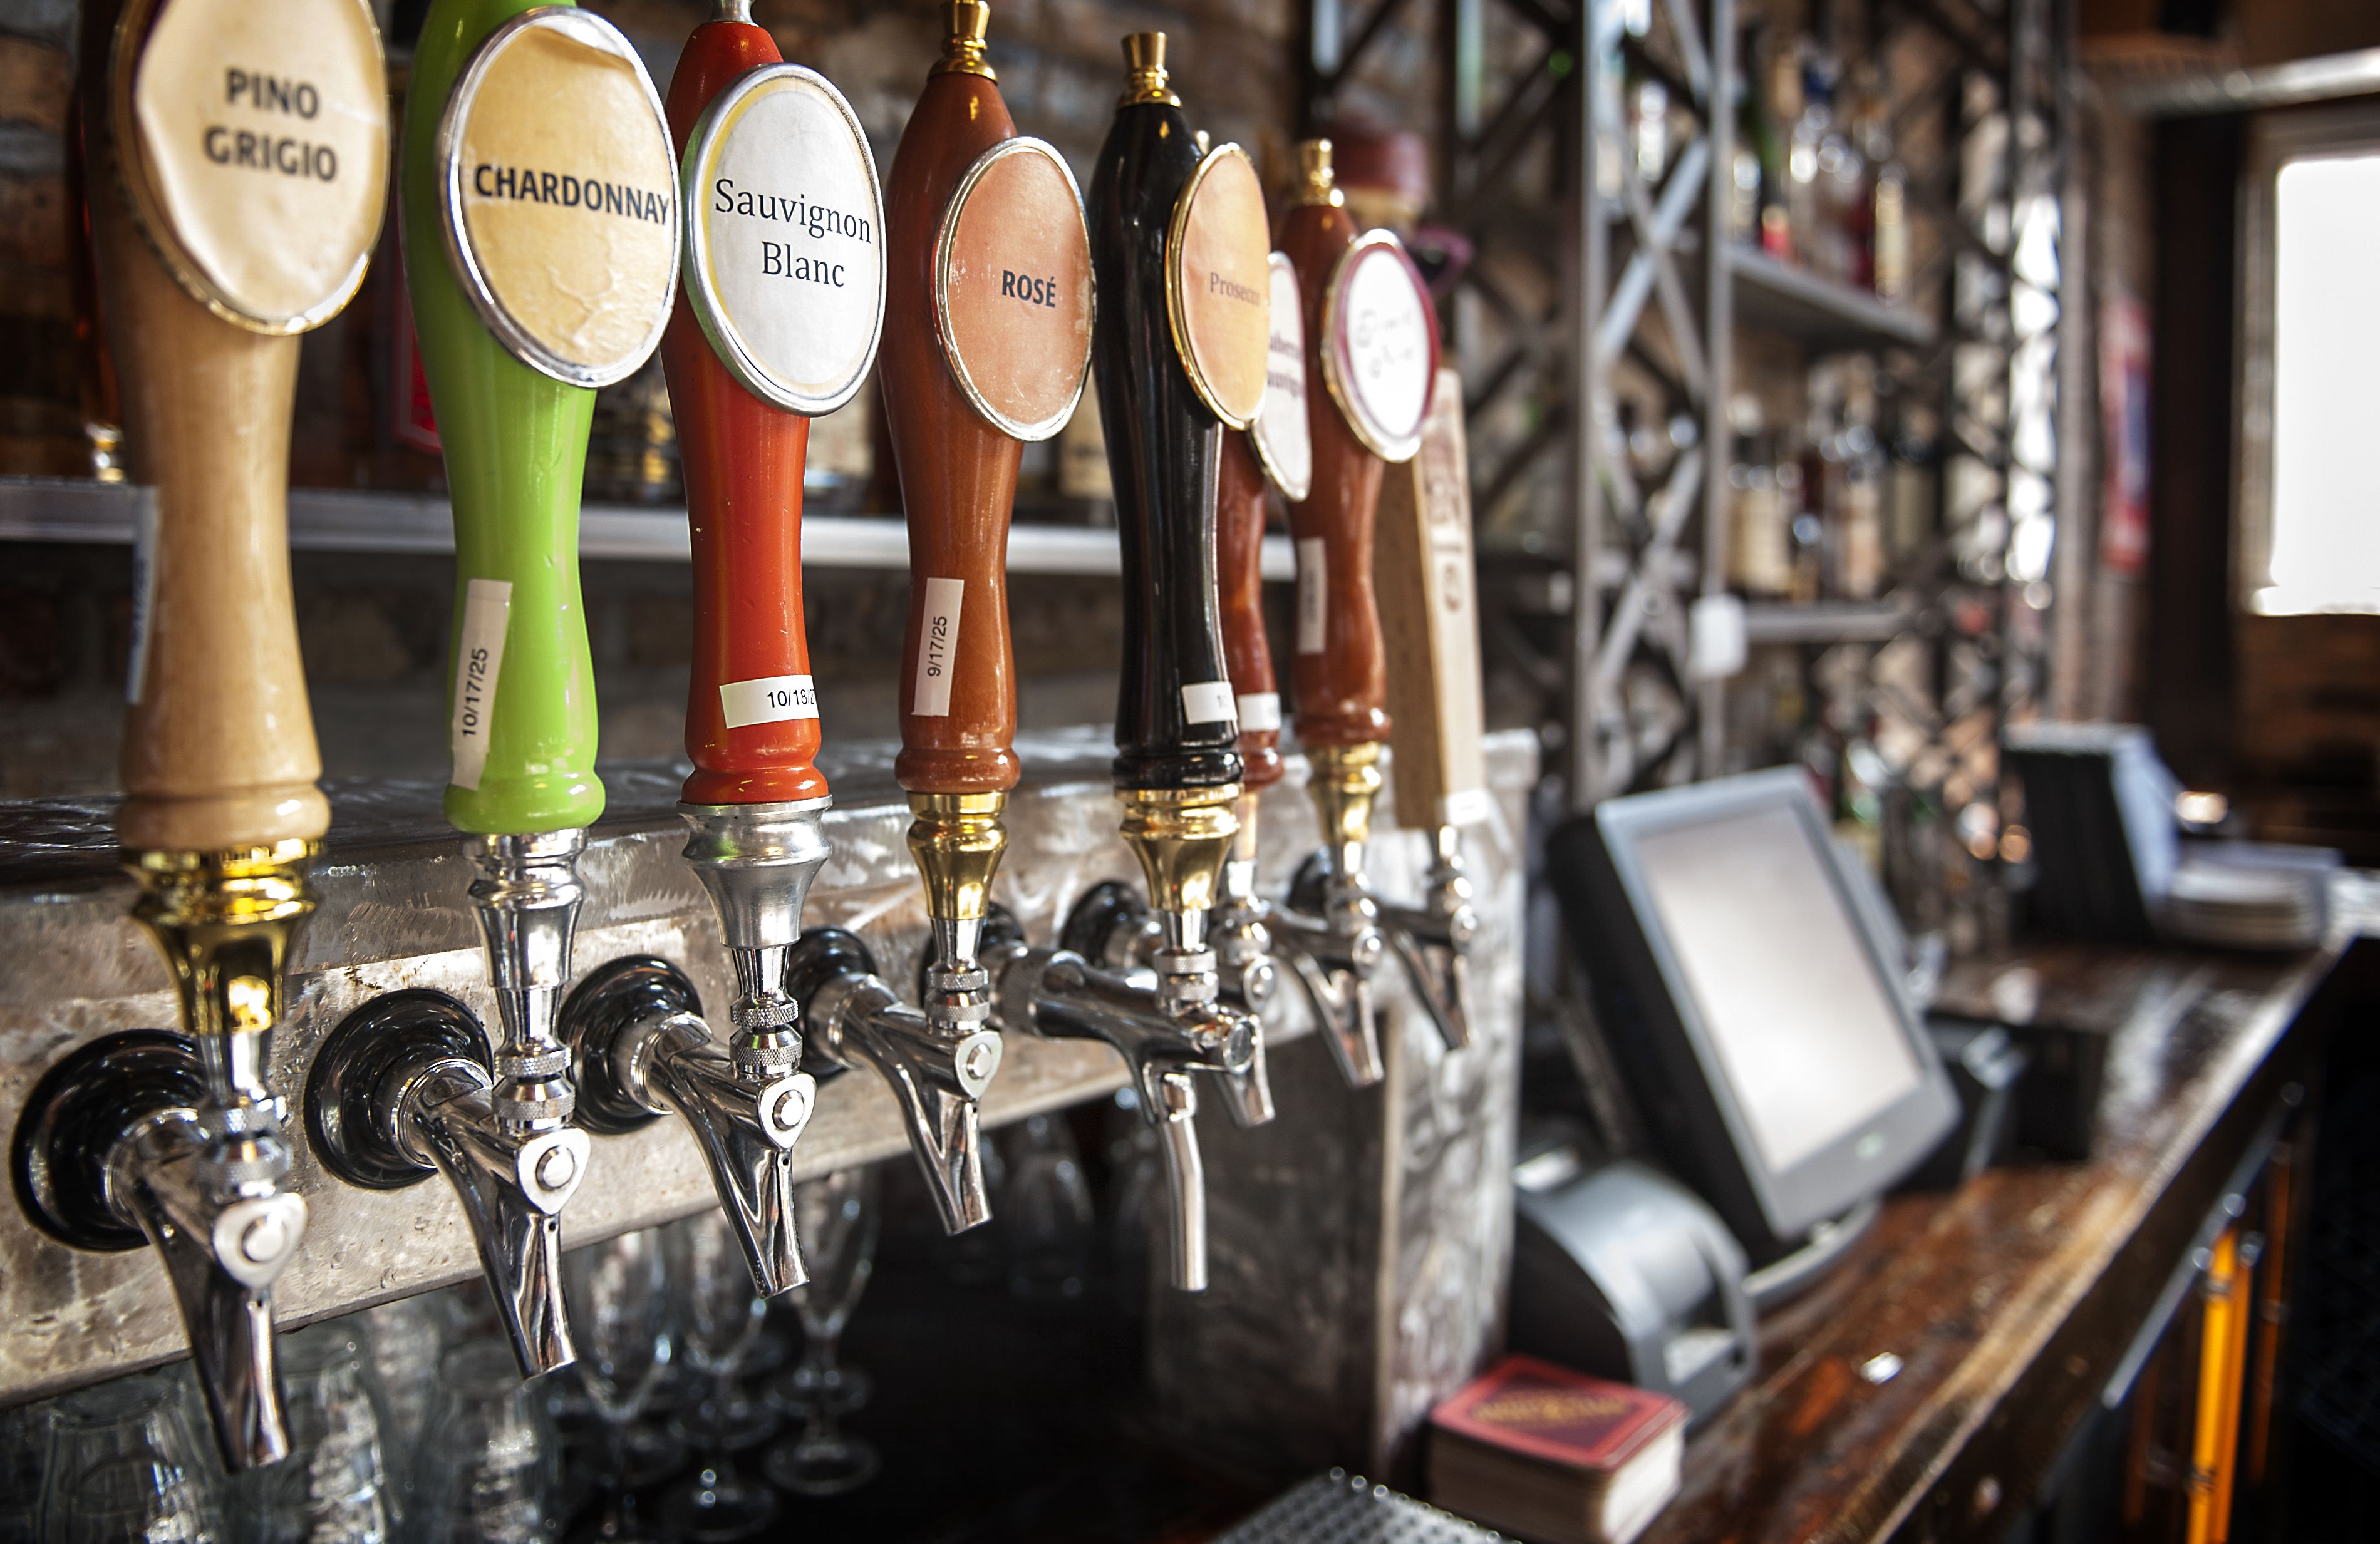 Magnificent Micro Matic Beer Tap Pattern - Water Faucet Ideas ...